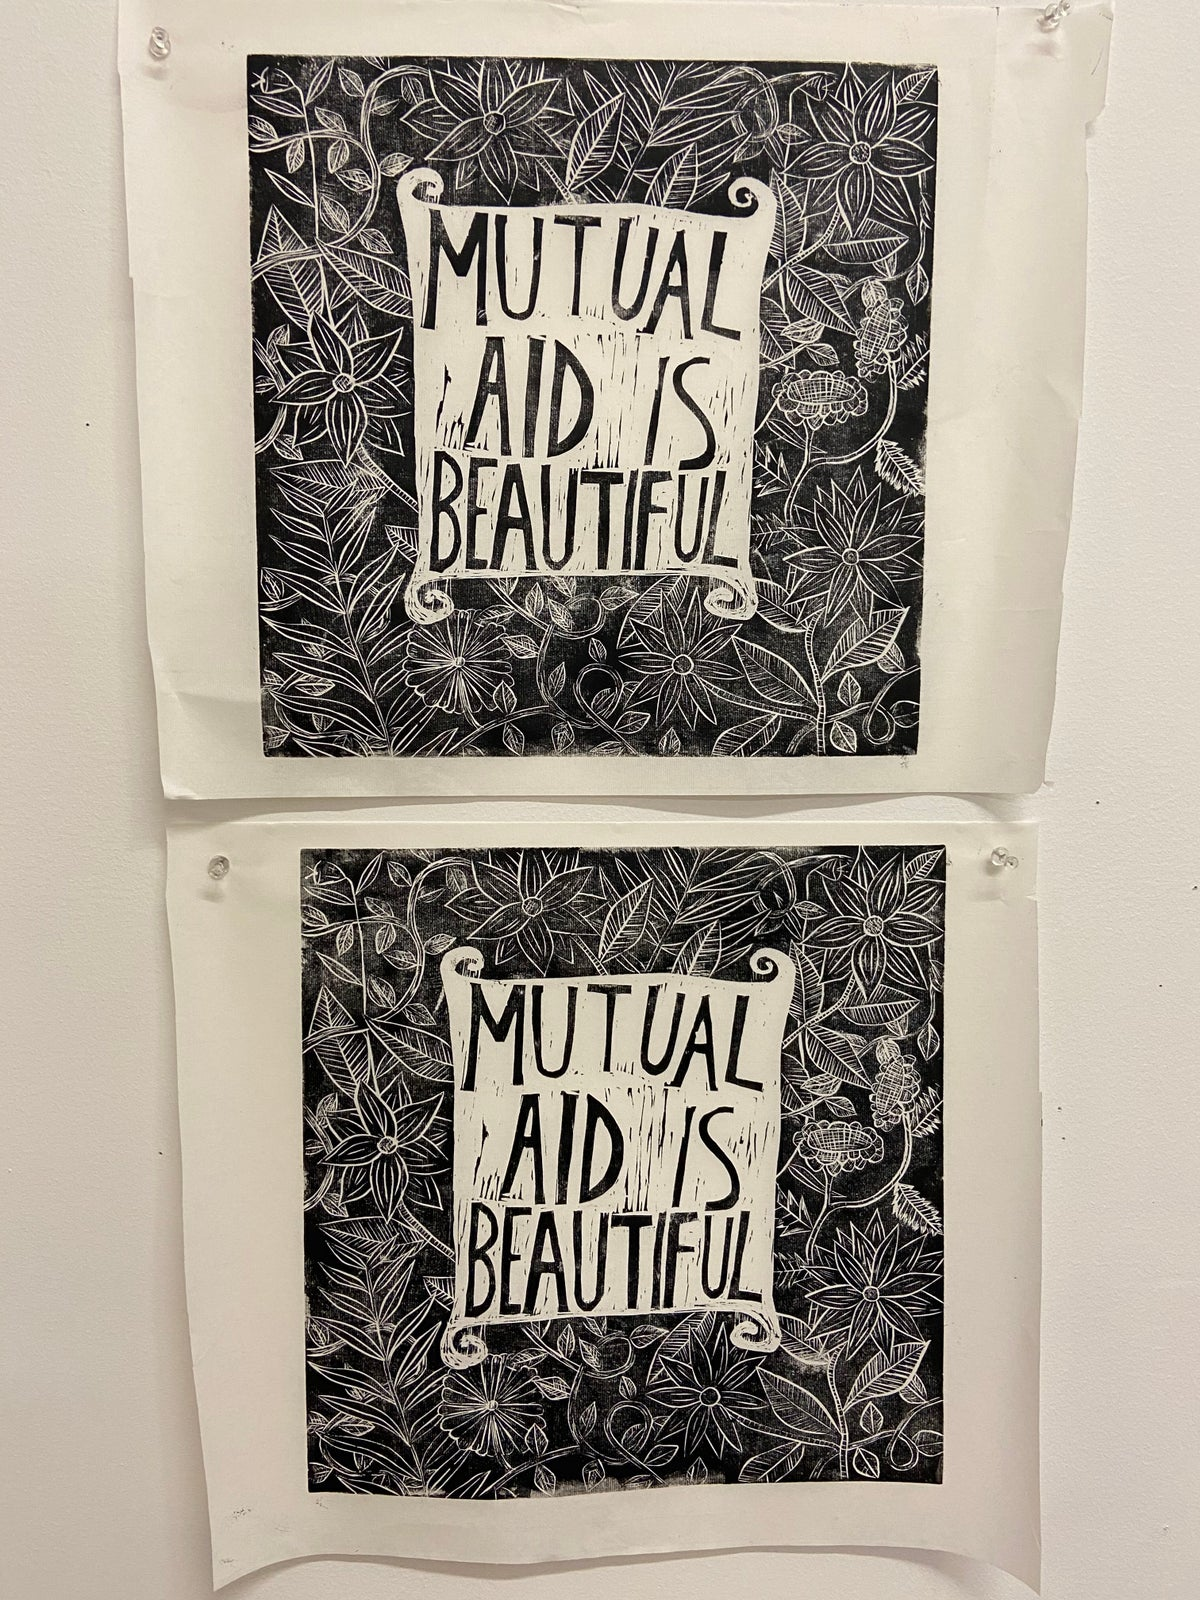 Image of Mutual Aid is Beautiful linocut print